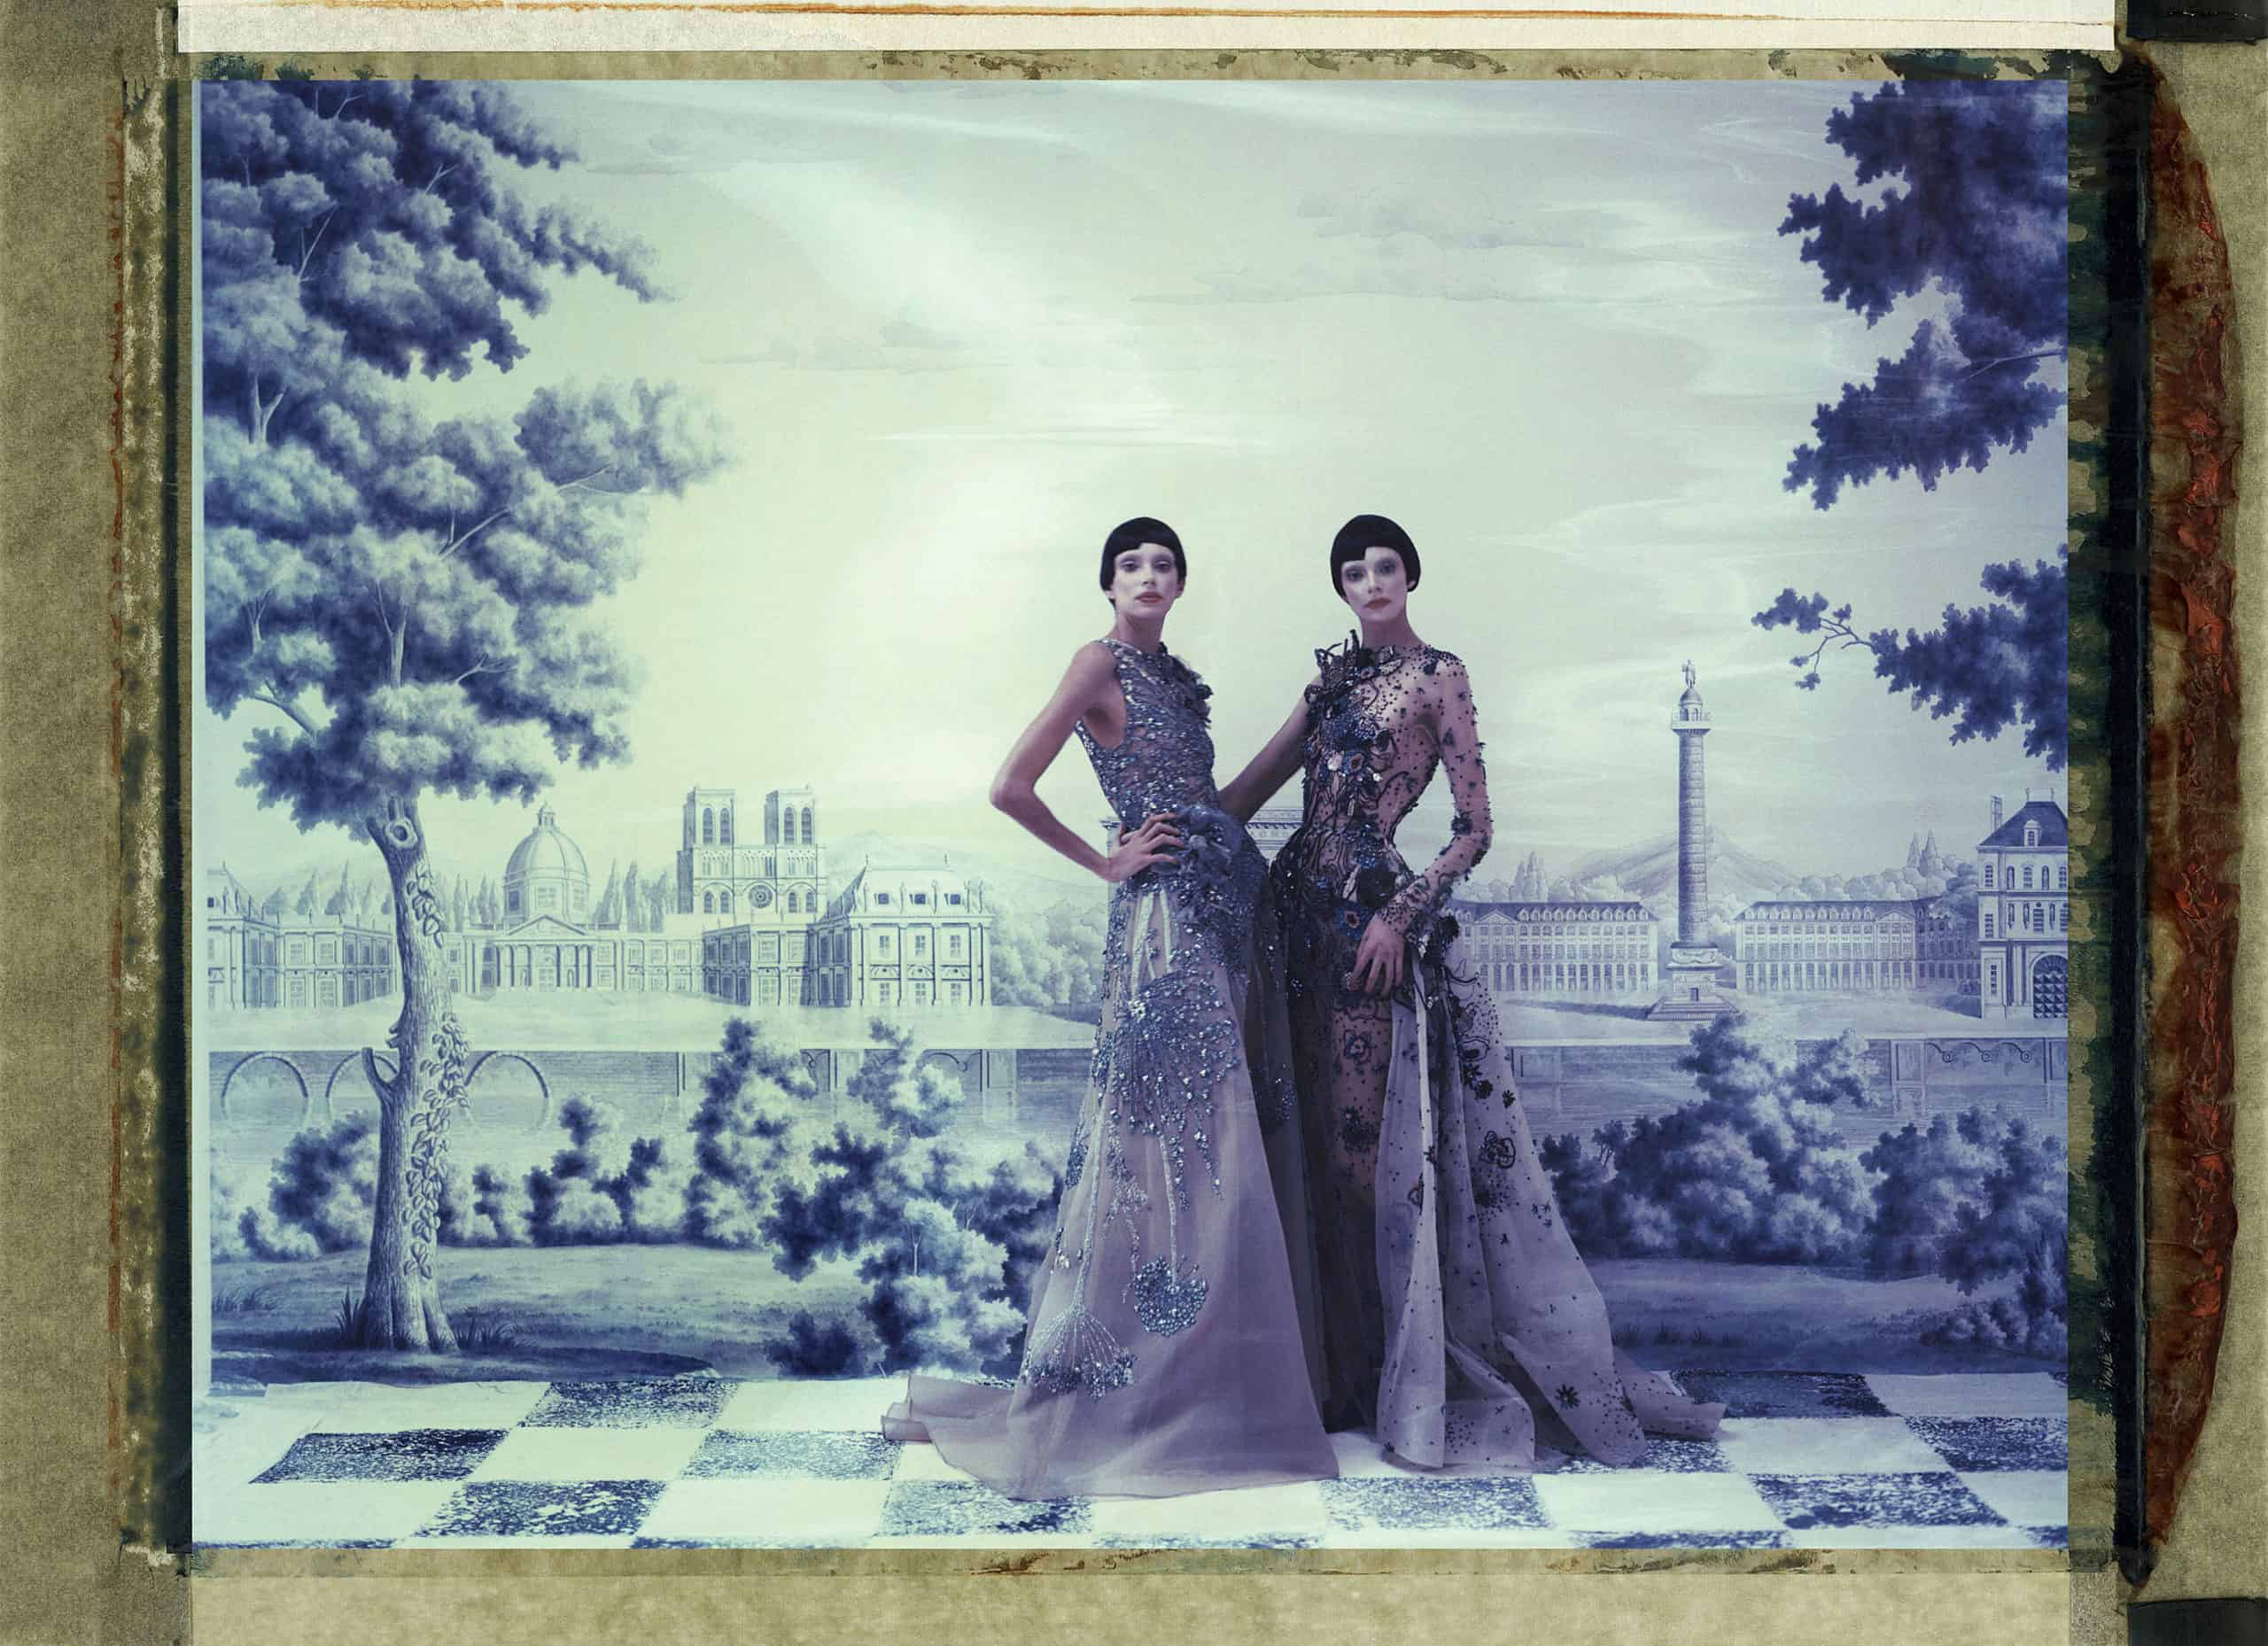 Fine art color photography of two twin fashion model wearing haute couture by Elie Saab, in front of a painted wallpaper depicting historic Paris. Wallpaper by de Gournay.